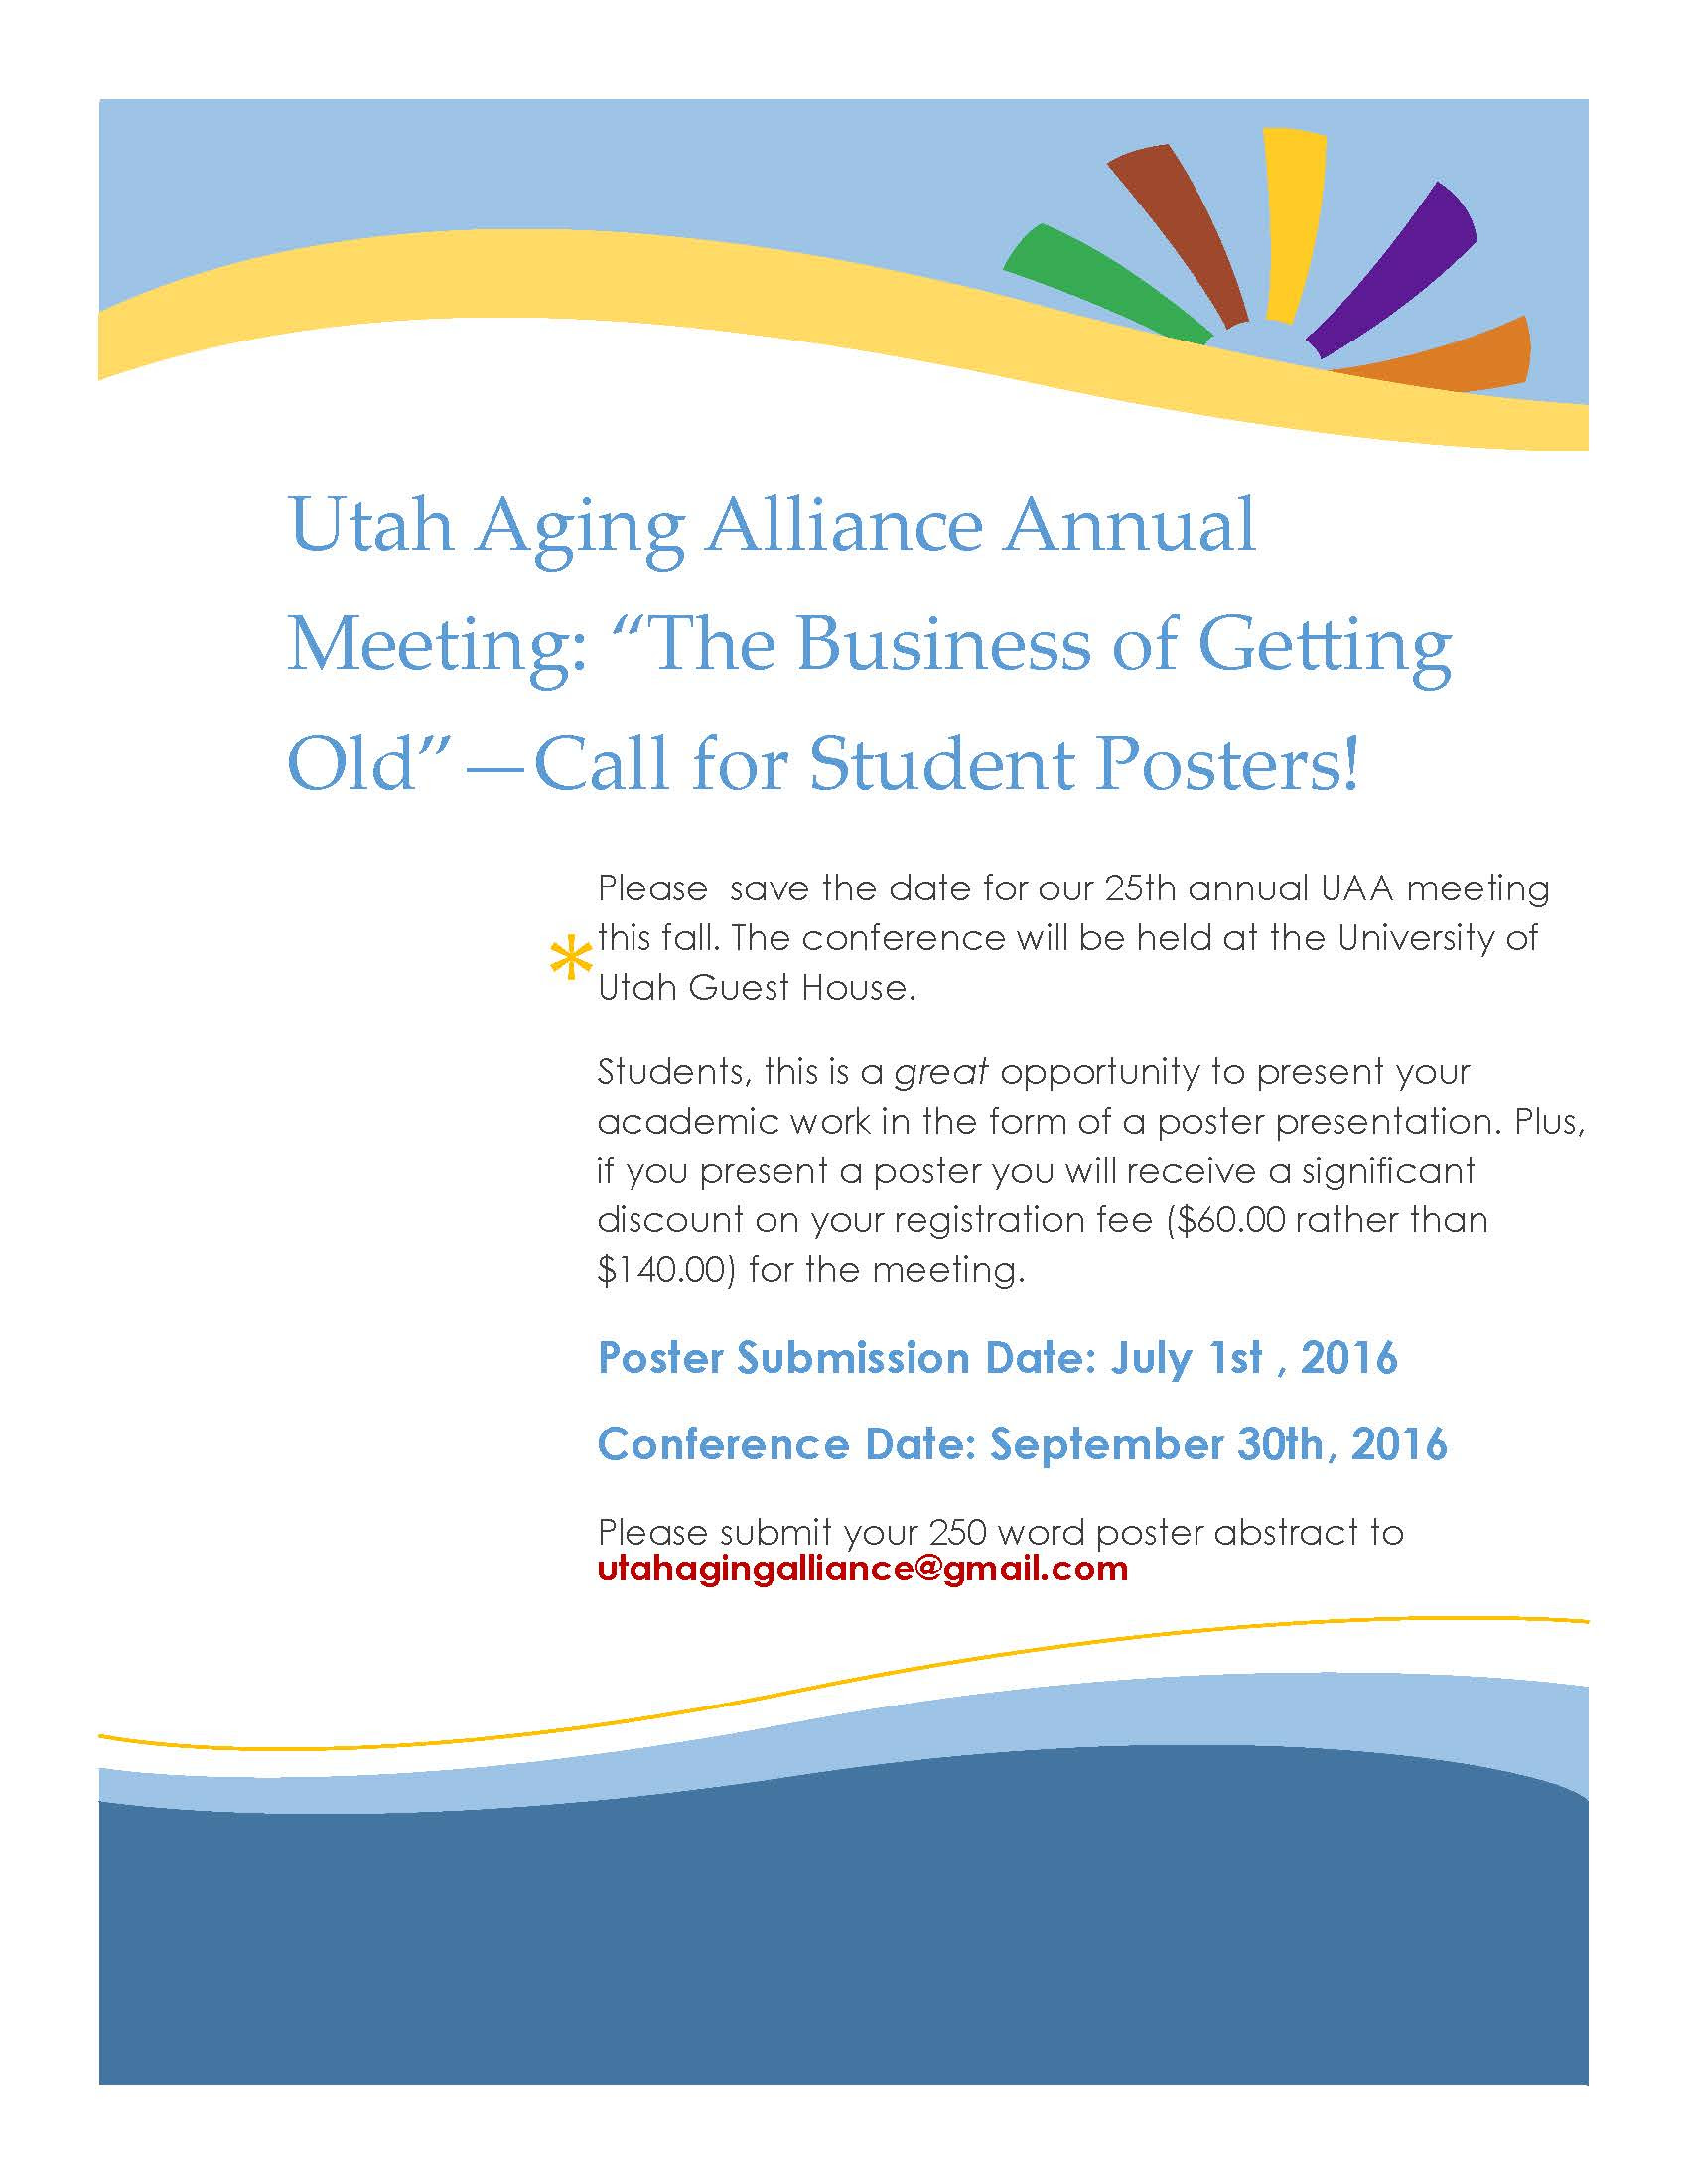 May - Center on Aging - The University of Utah